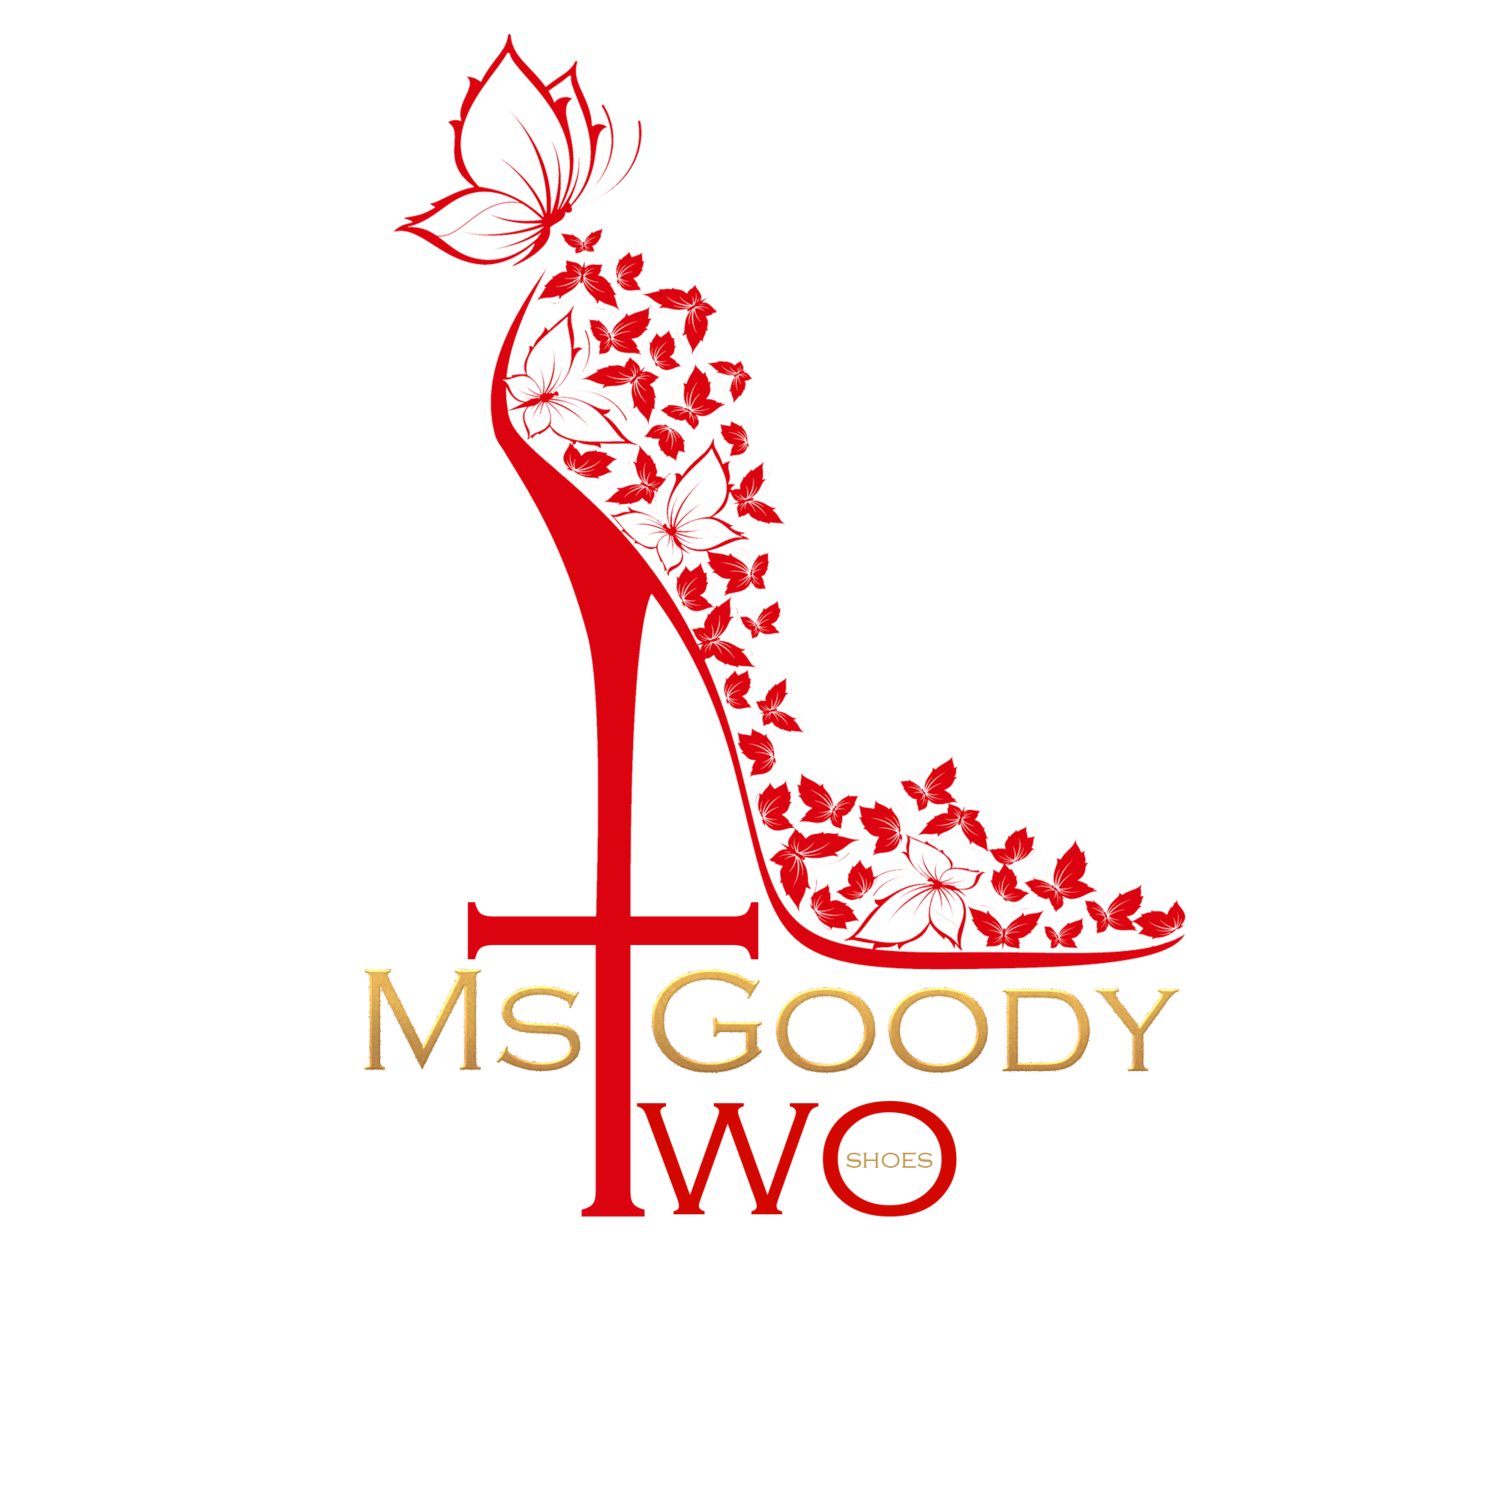 Ms Goody Two Shoes